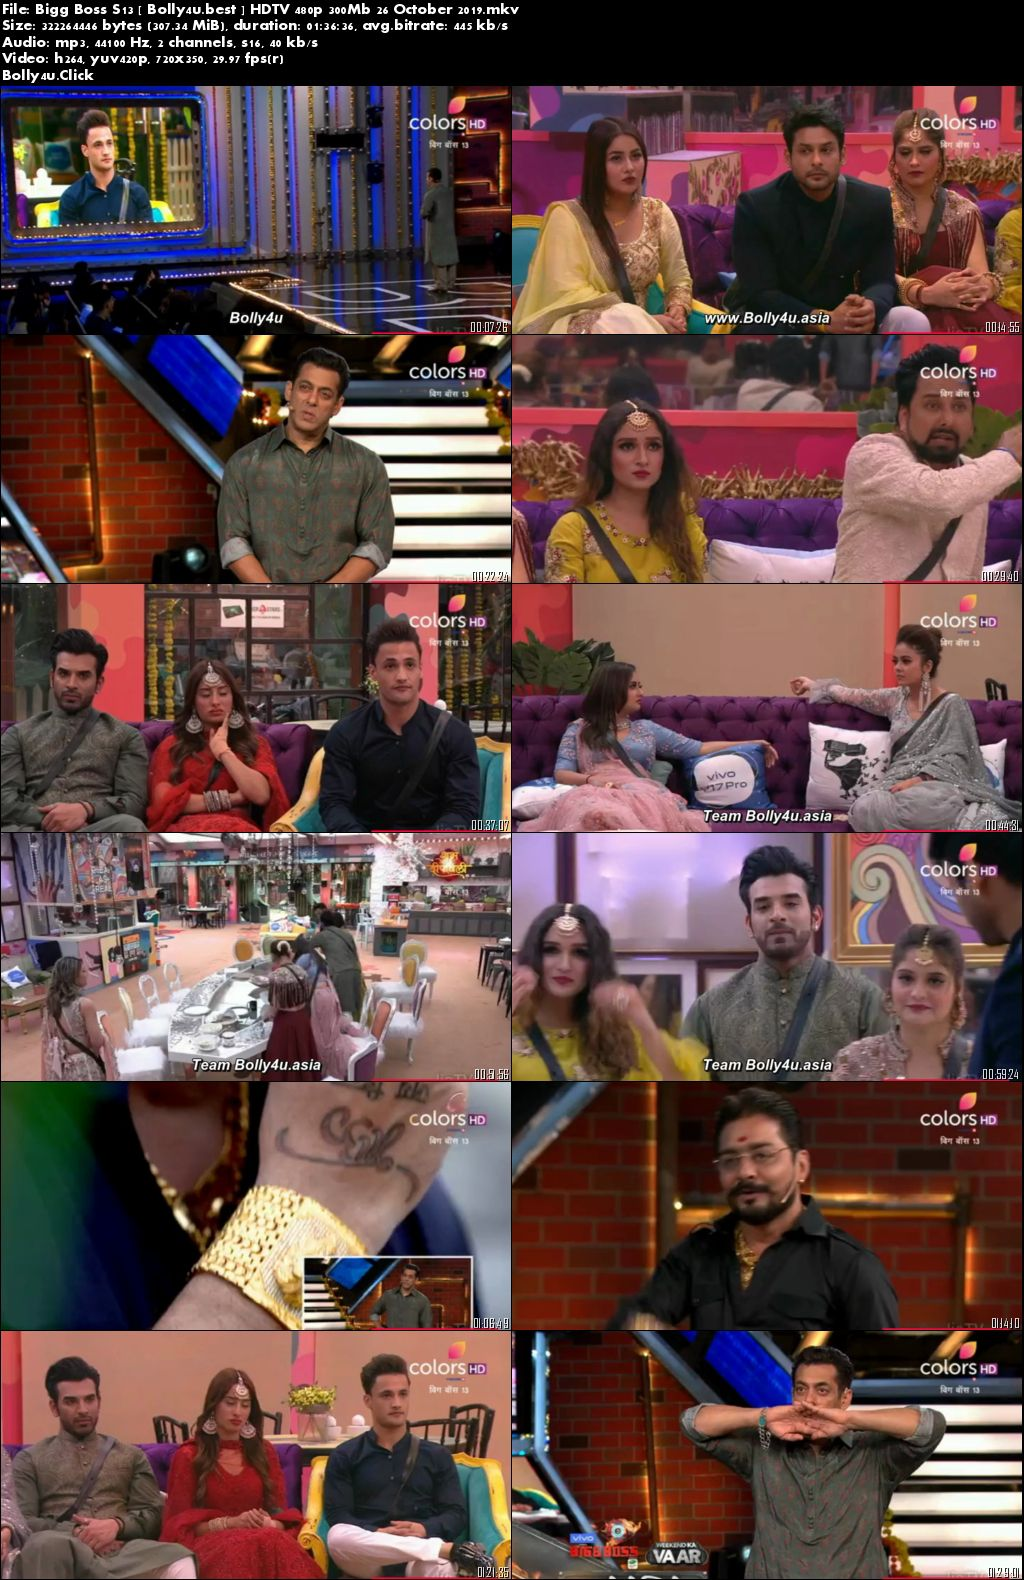 Bigg Boss S13 HDTV 480p 300Mb 26 October 2019 Download